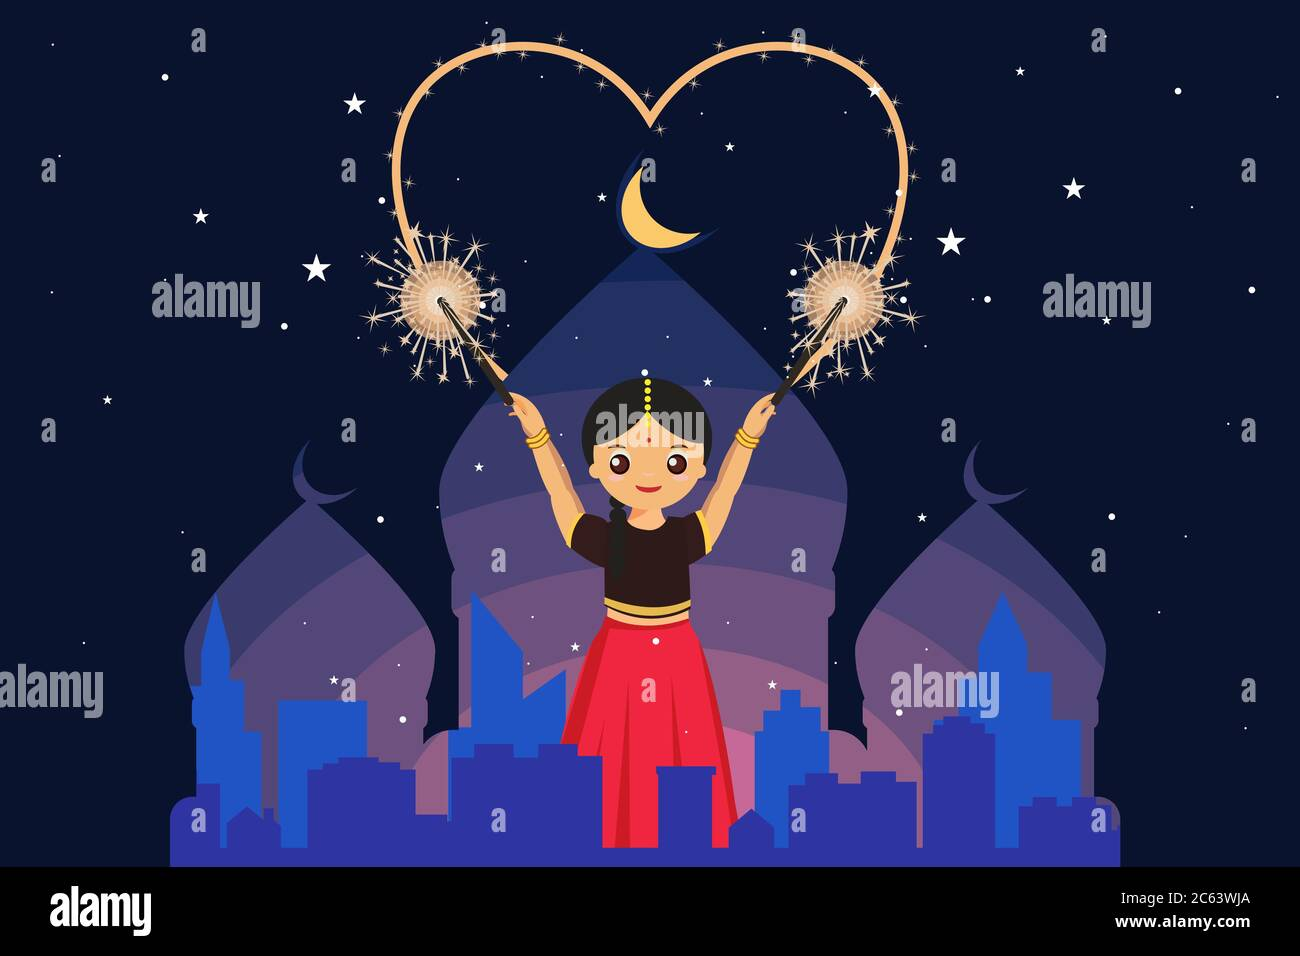 Diwali Drawing High Resolution Stock Photography And Images Alamy